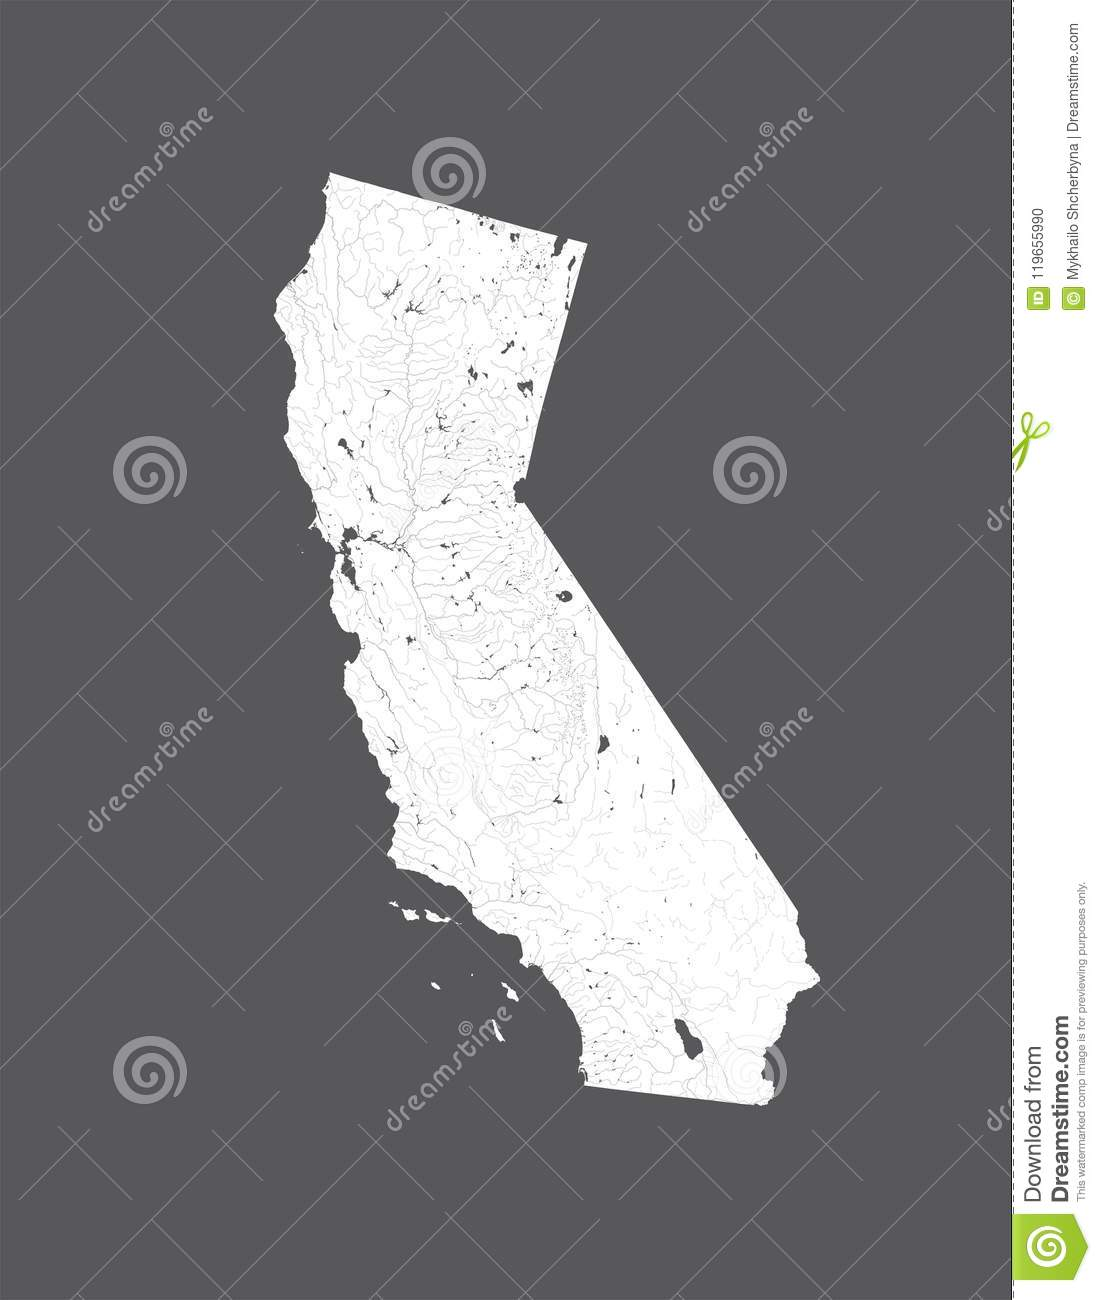 Map Of California Lakes.Map Of California With Lakes And Rivers Stock Vector Illustration